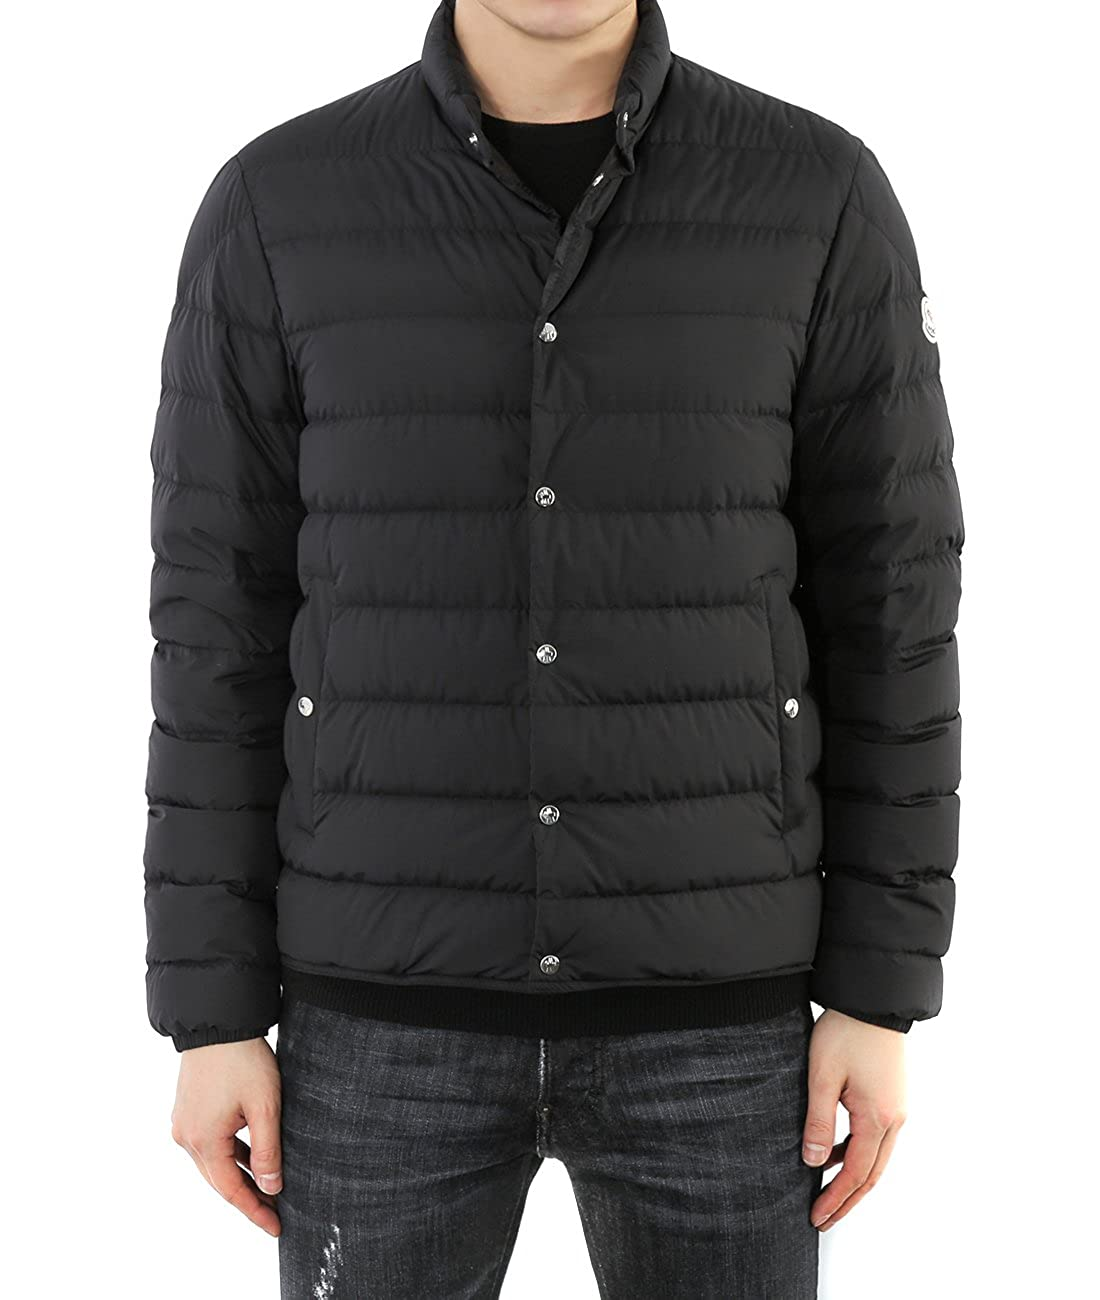 d5c8a3f22 Wiberlux Moncler Cyclope Men's Padded Snap-Fastened Jacket 5 Black ...